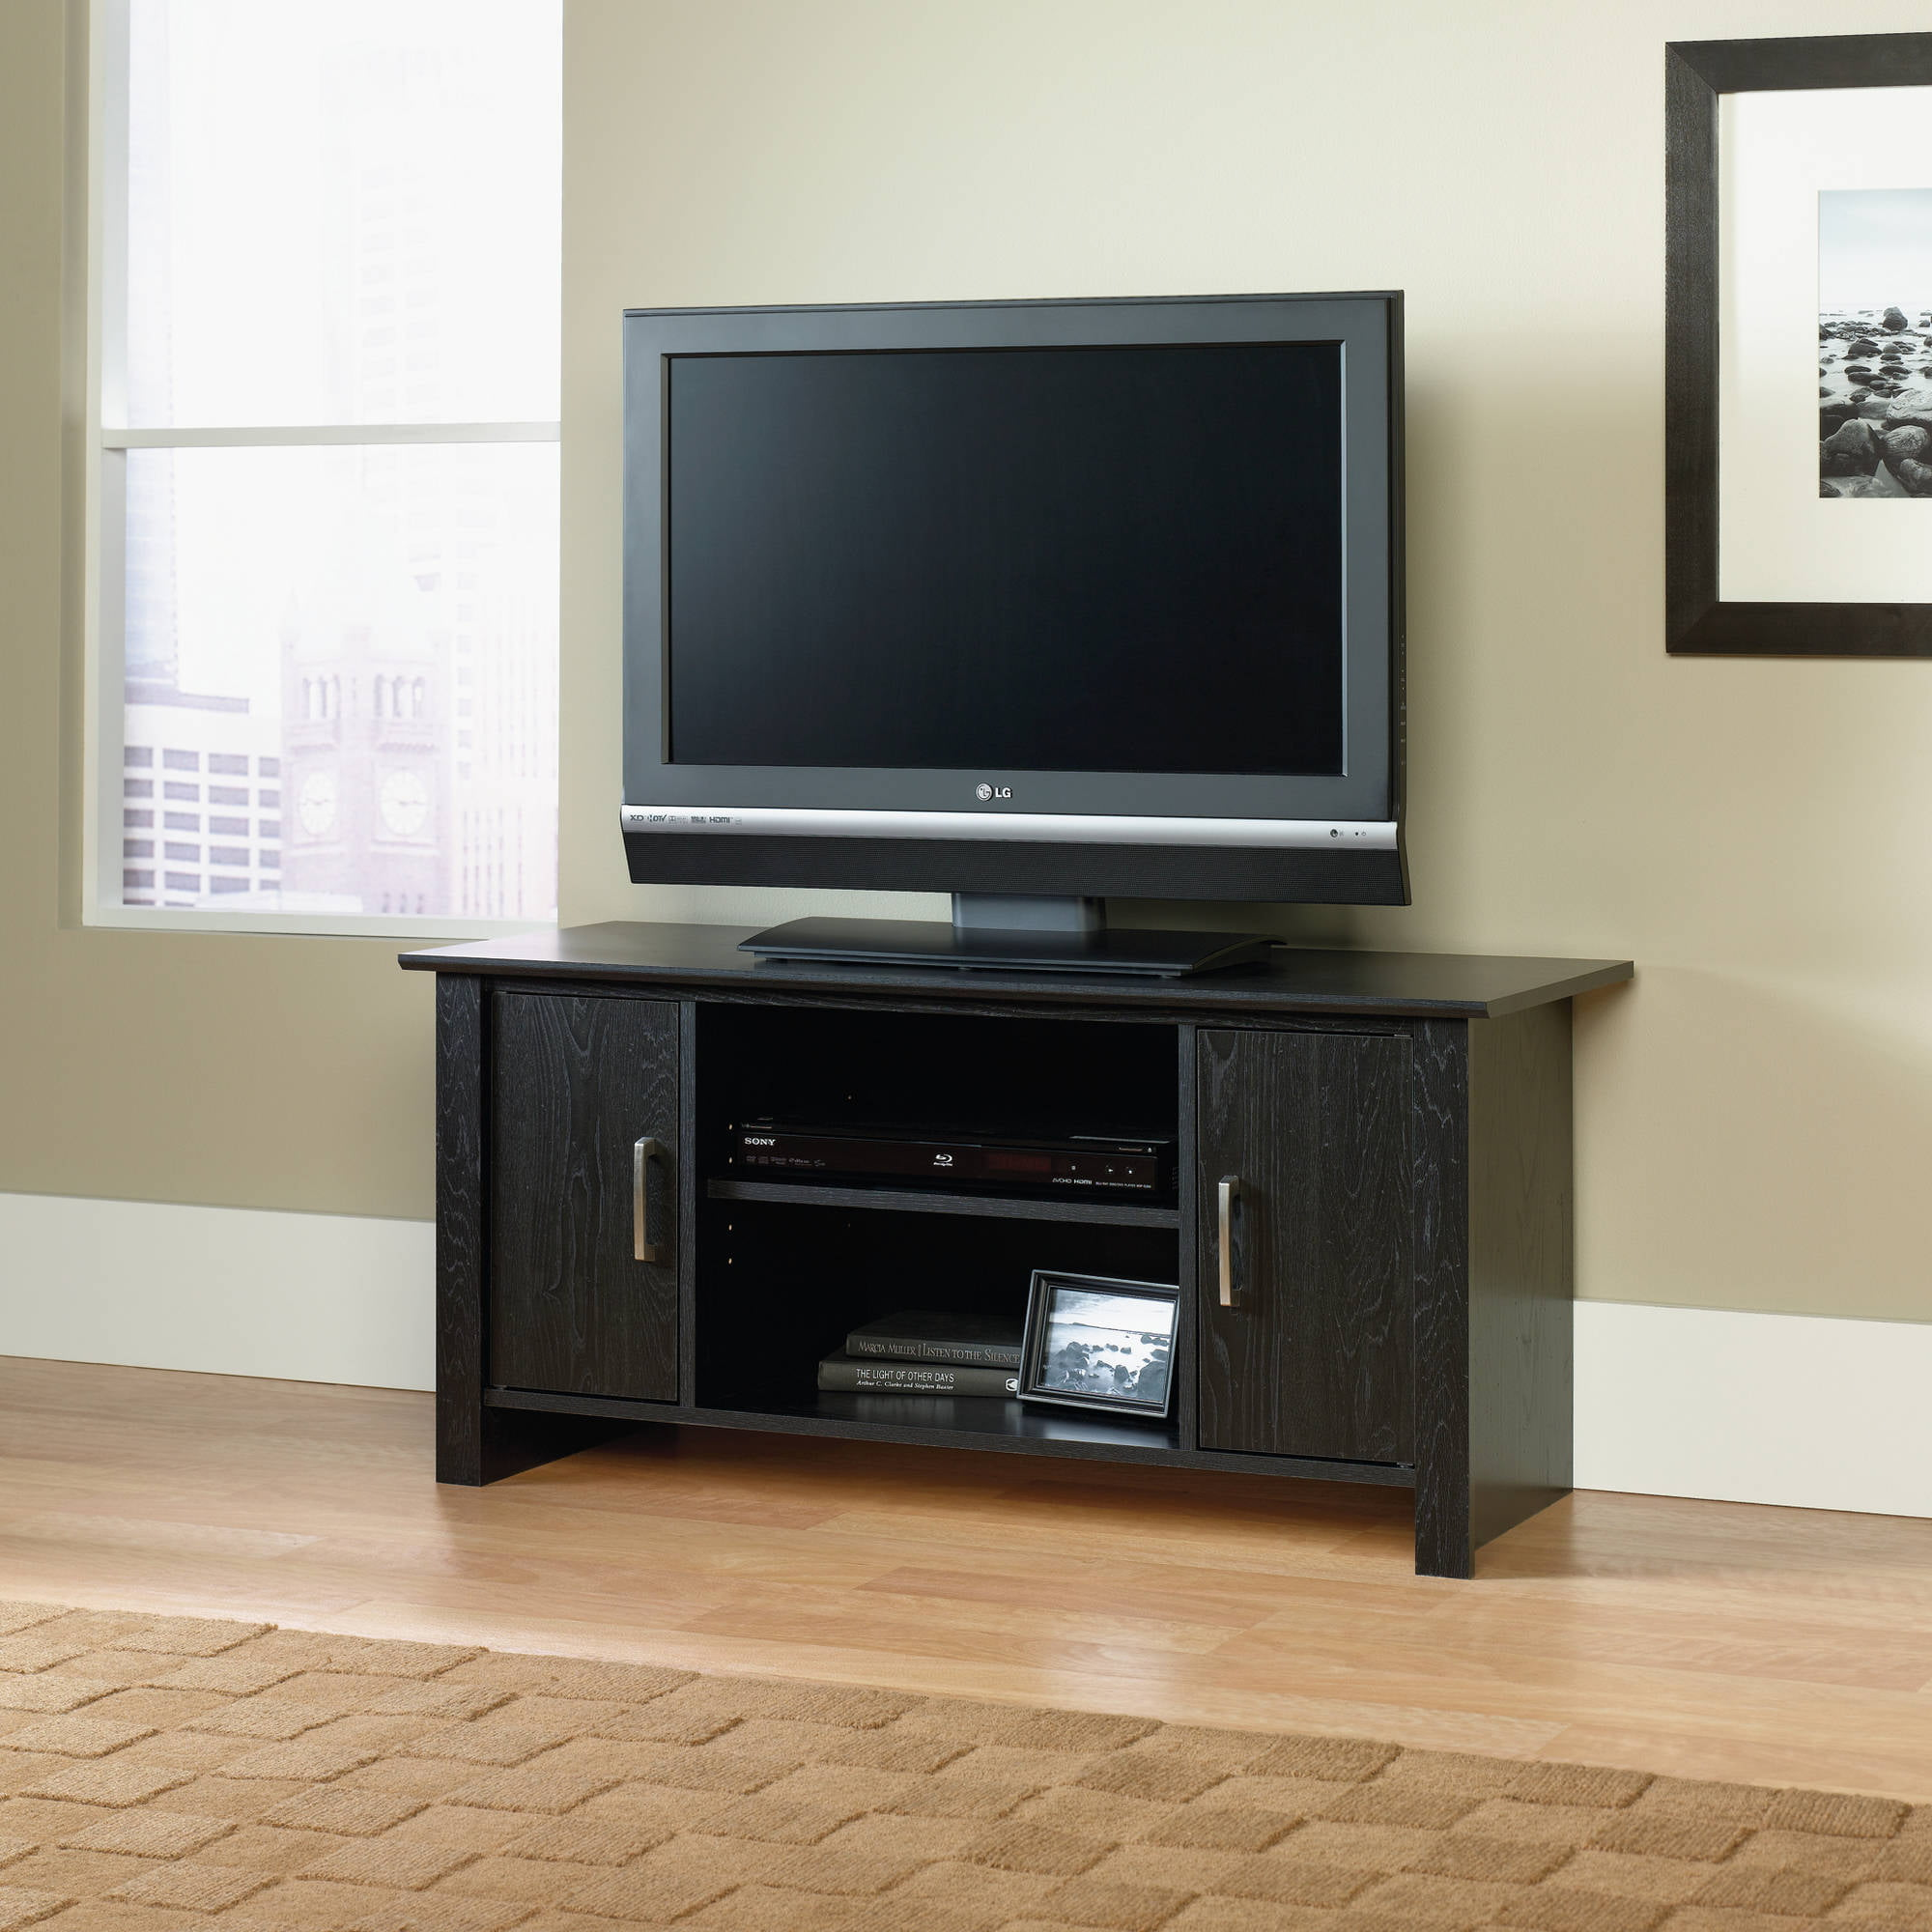 Black Entertainment Center Wall Unit tv stands & entertainment centers - walmart